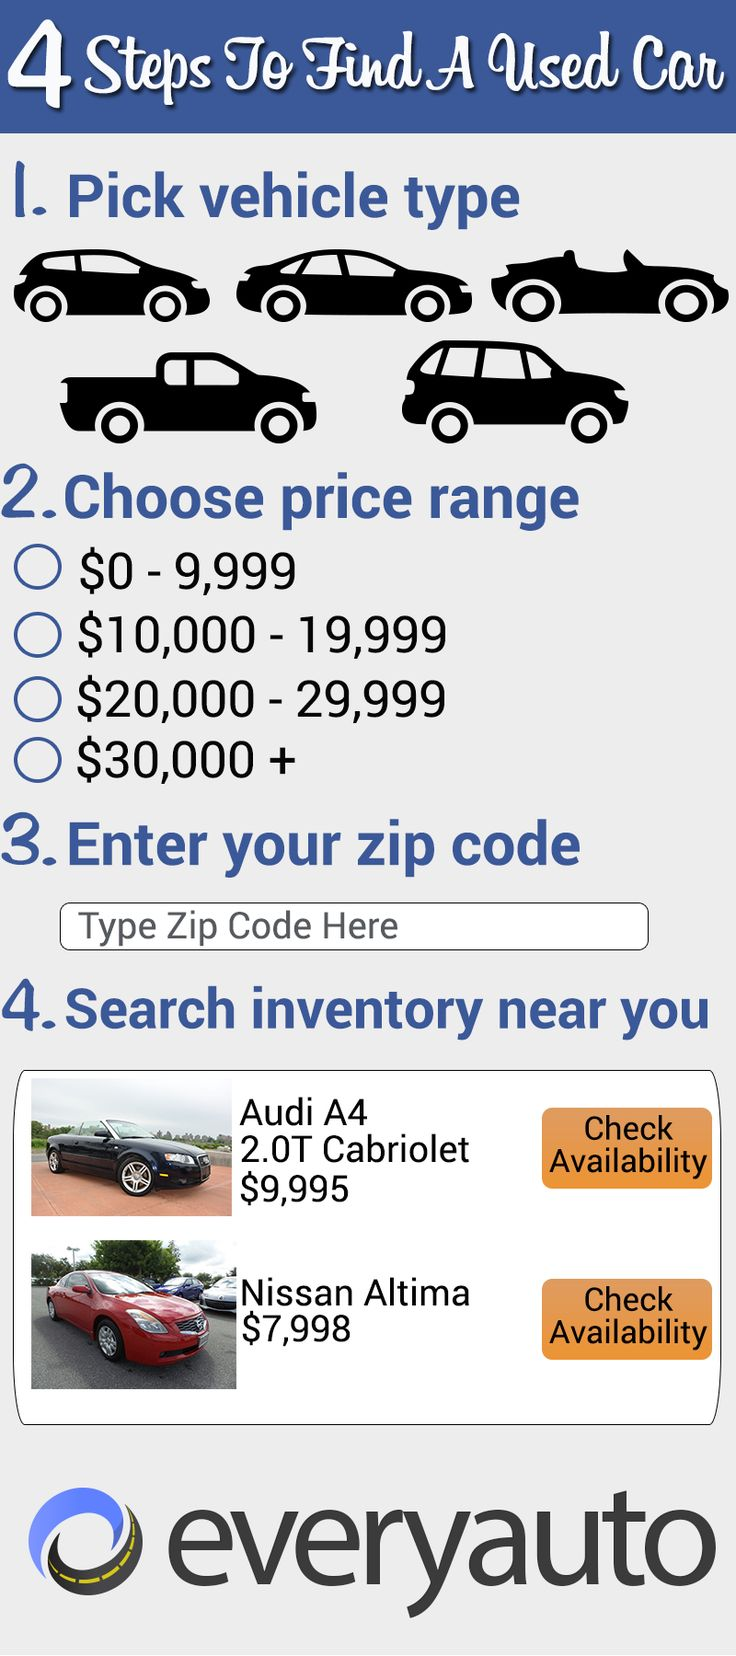 Search used cars for sale near you in 4 easy steps at trusted local car dealerships! Affordable pre-owned cars, trucks and SUVs available. Inventory updated daily.